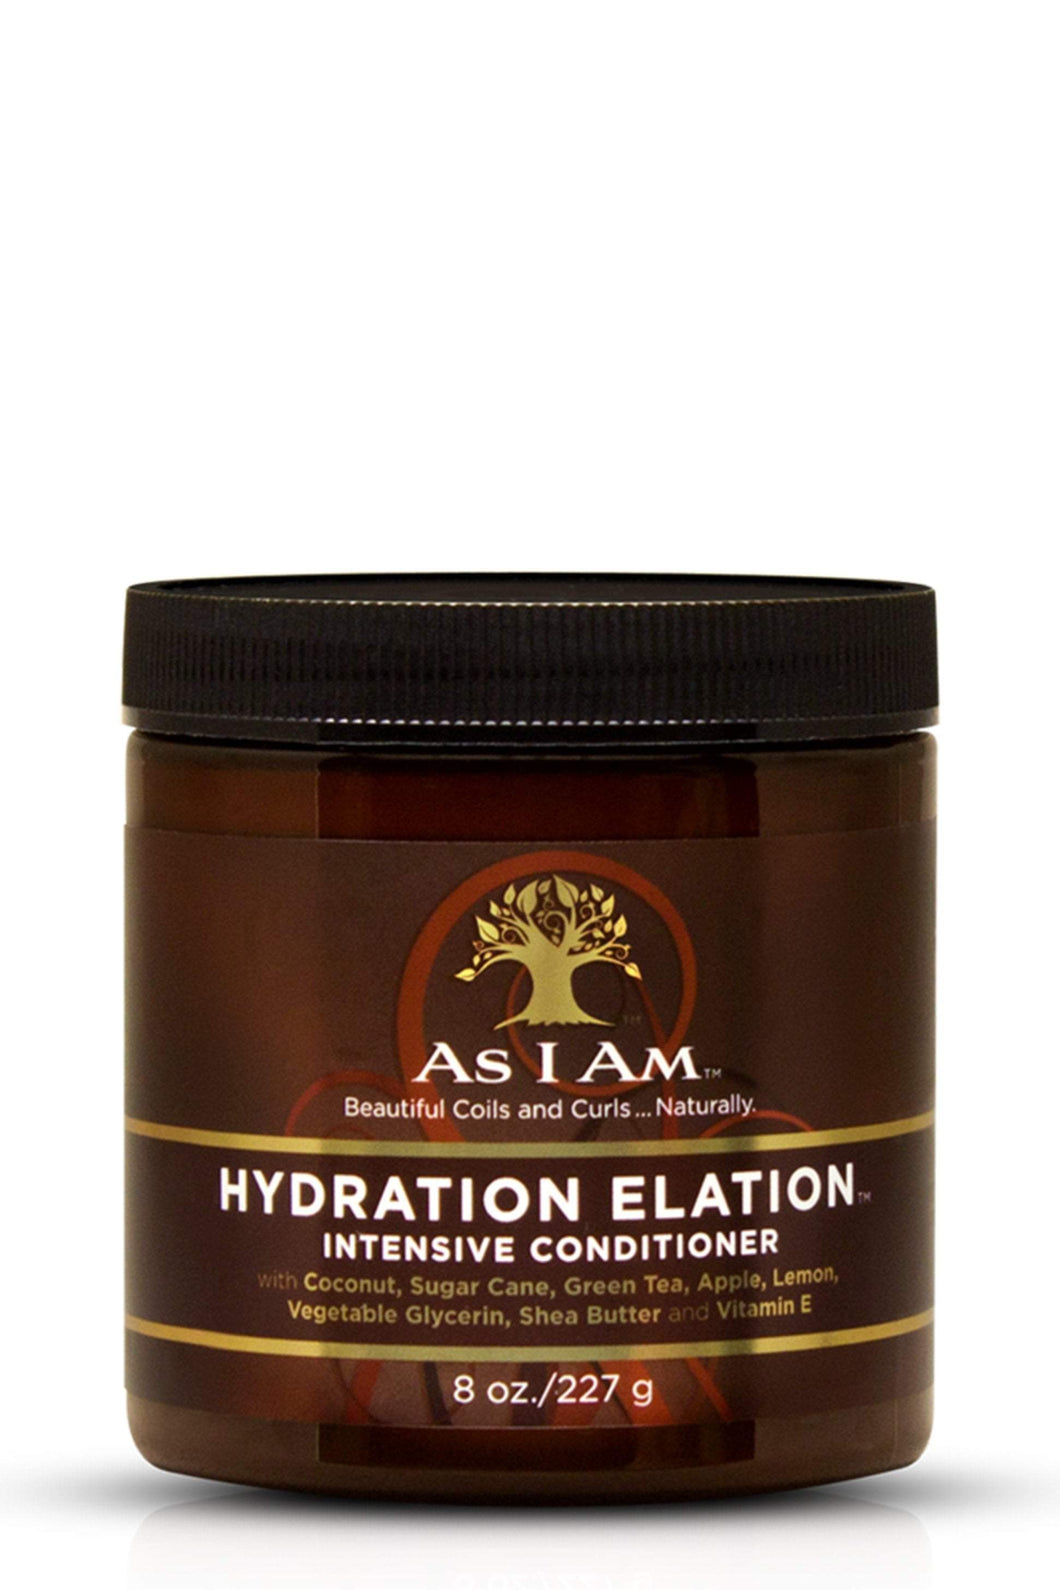 AS I AM Hydration Elation Intensive Conditioner (227g)